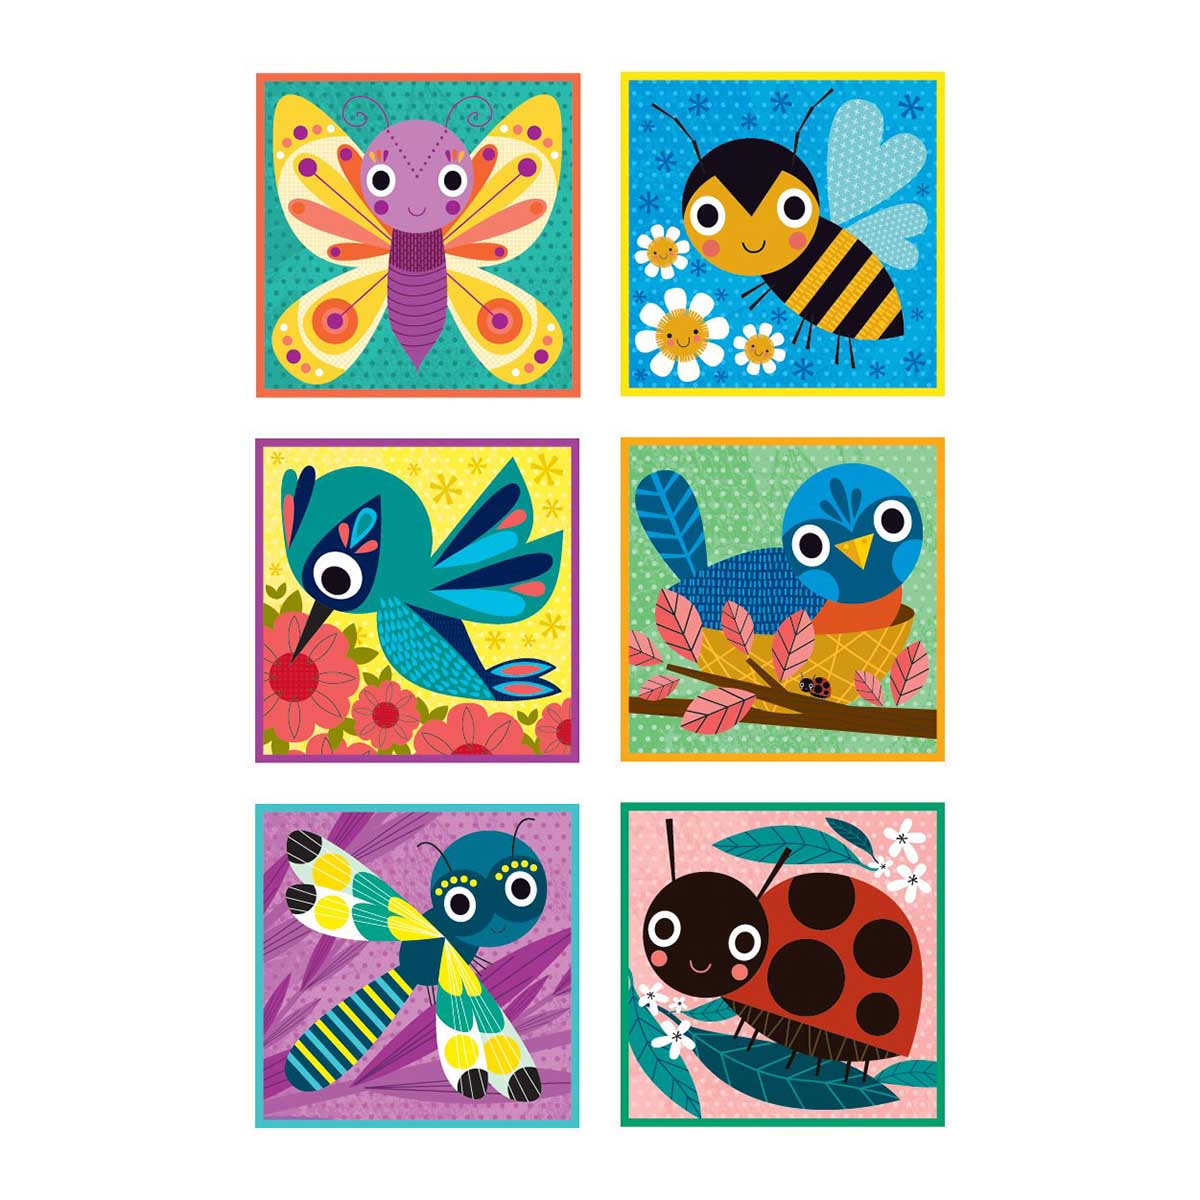 Garden Friends Butterflies and Insects Jigsaw Puzzle